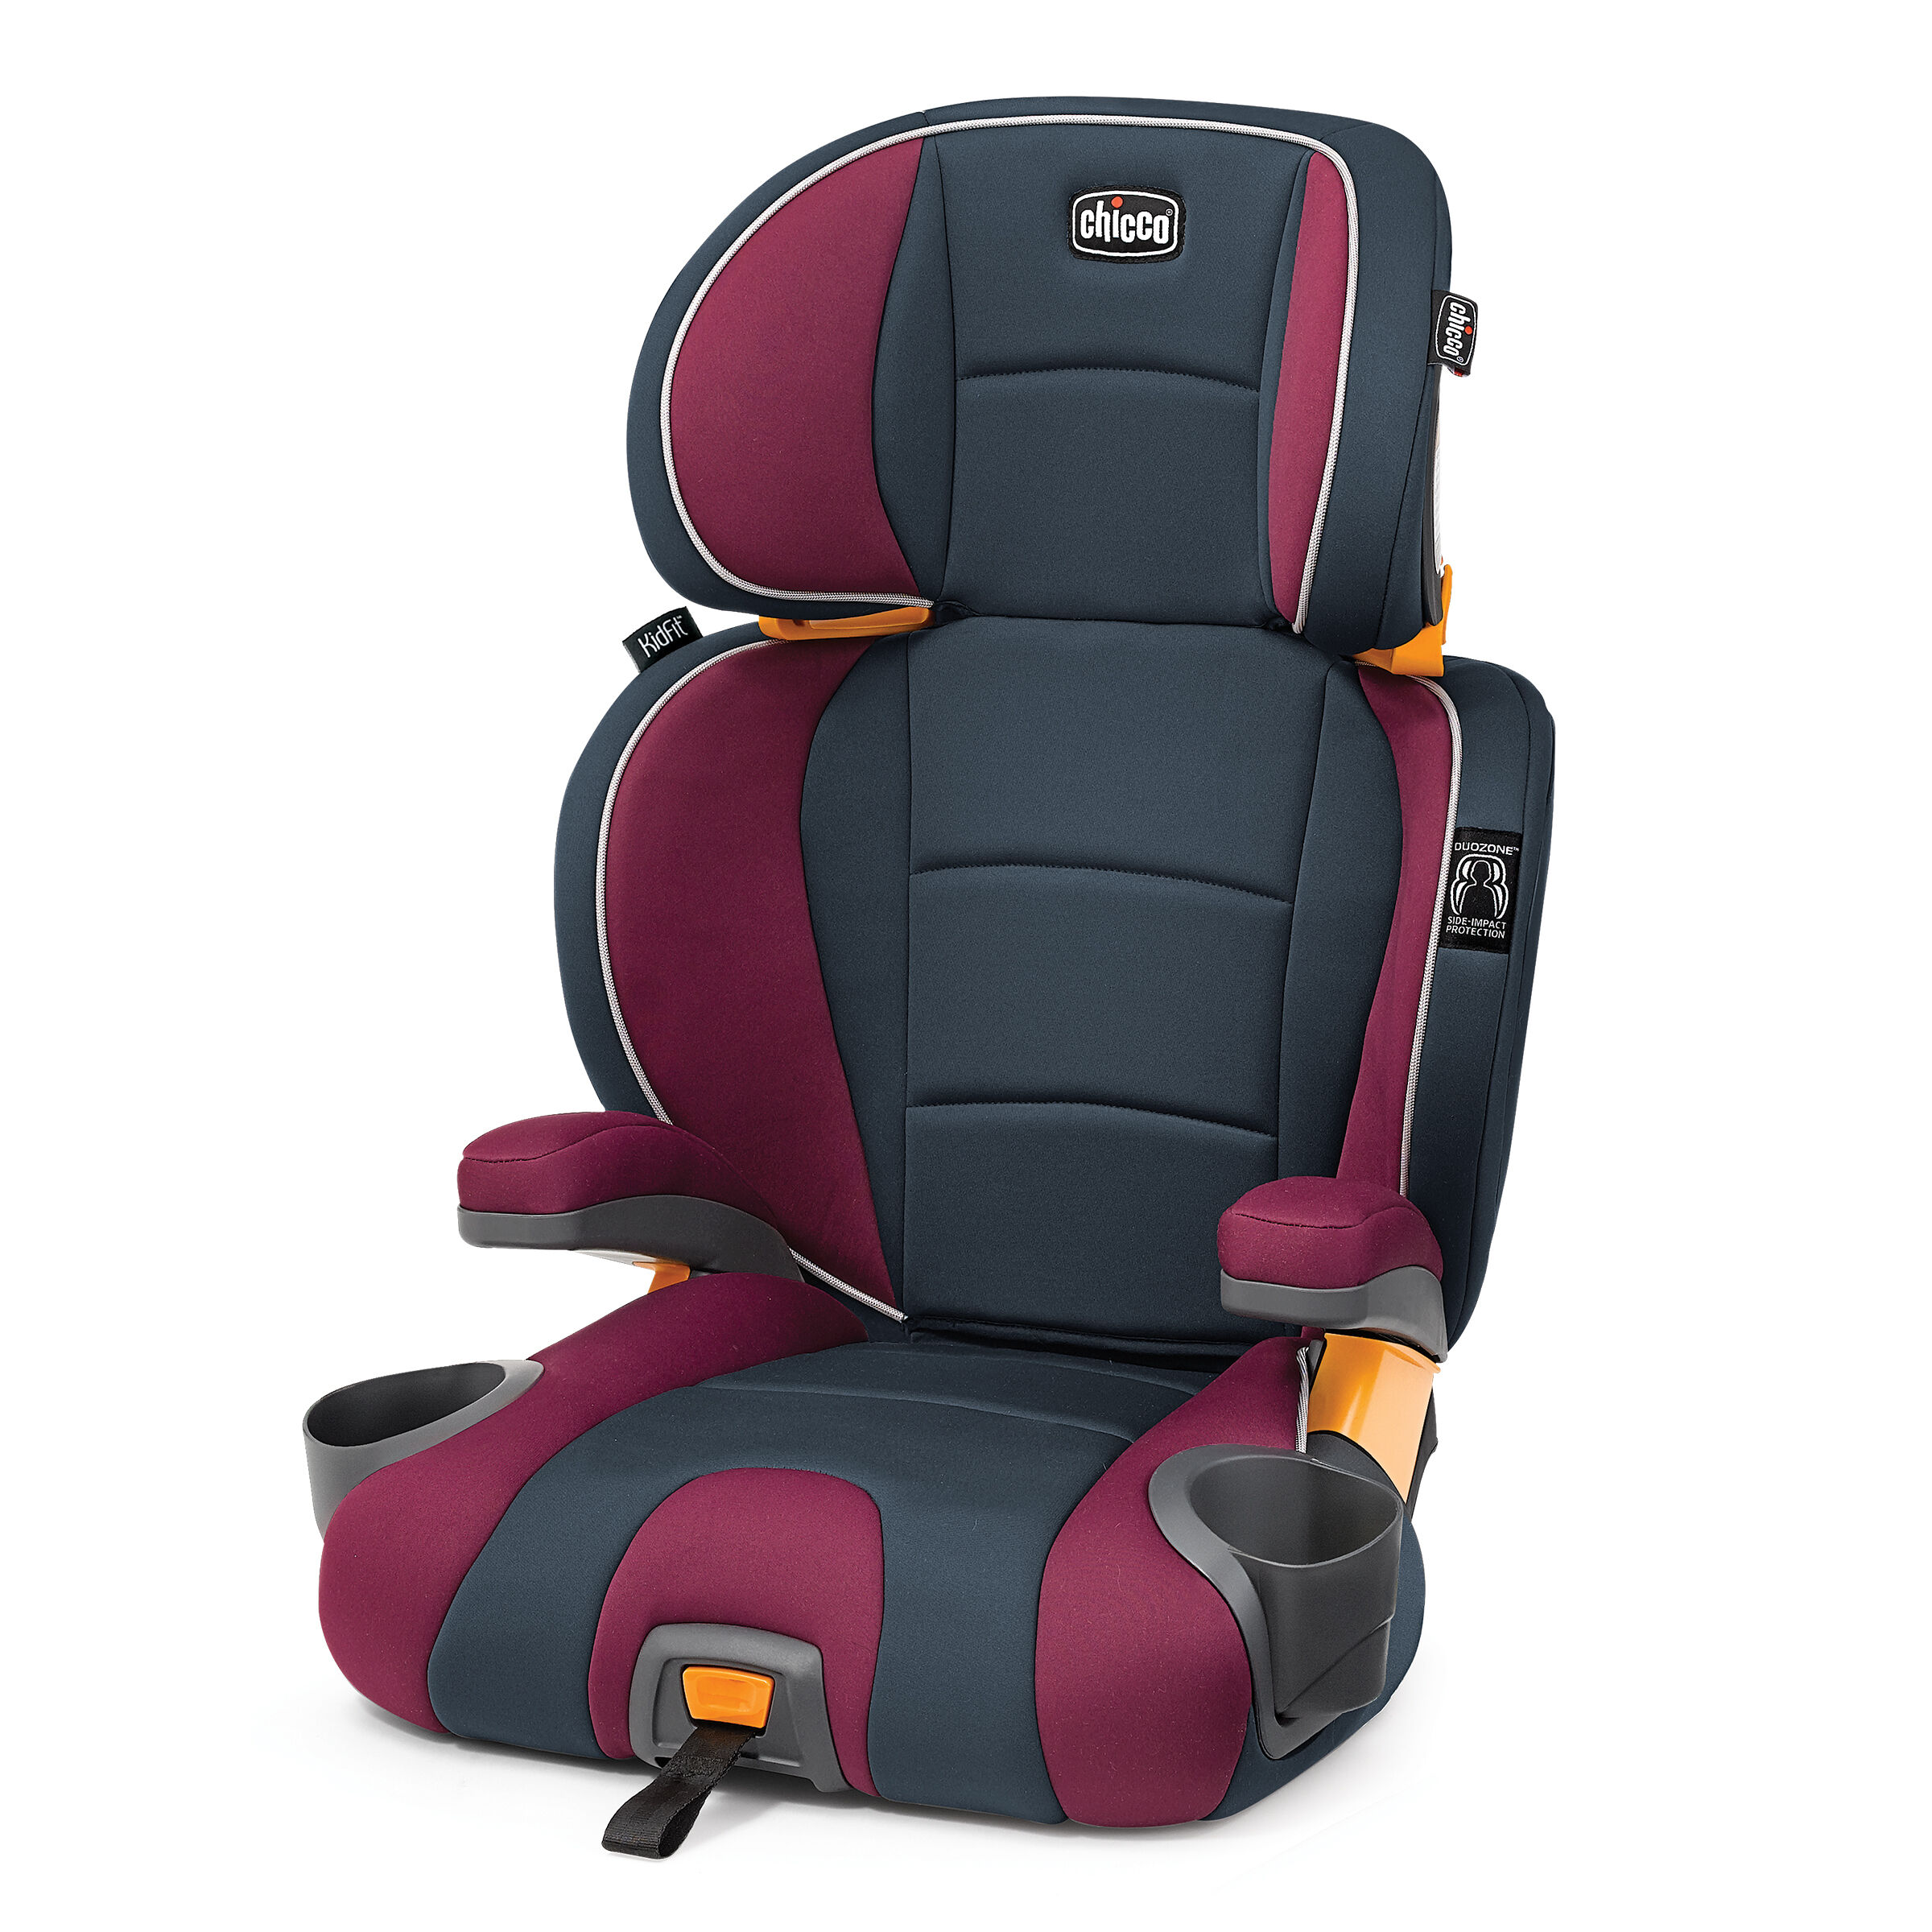 booster seat chair swivel uk gumtree chicco kidfit 2 in 1 belt positioning amethyst